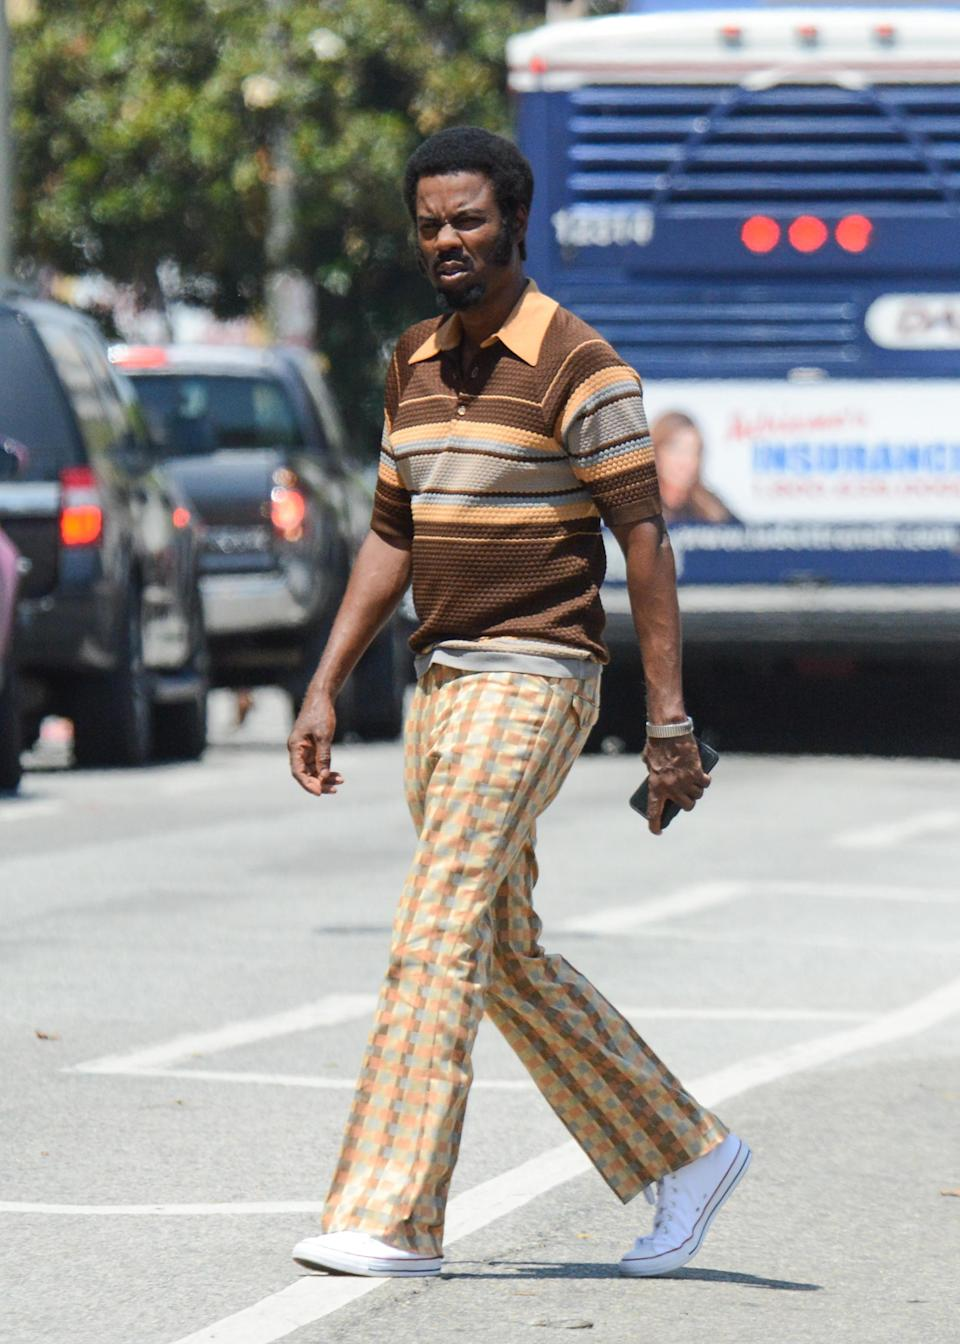 Chris Rock spotted on set in a '70s ensemble. (Photo: Getty Images)